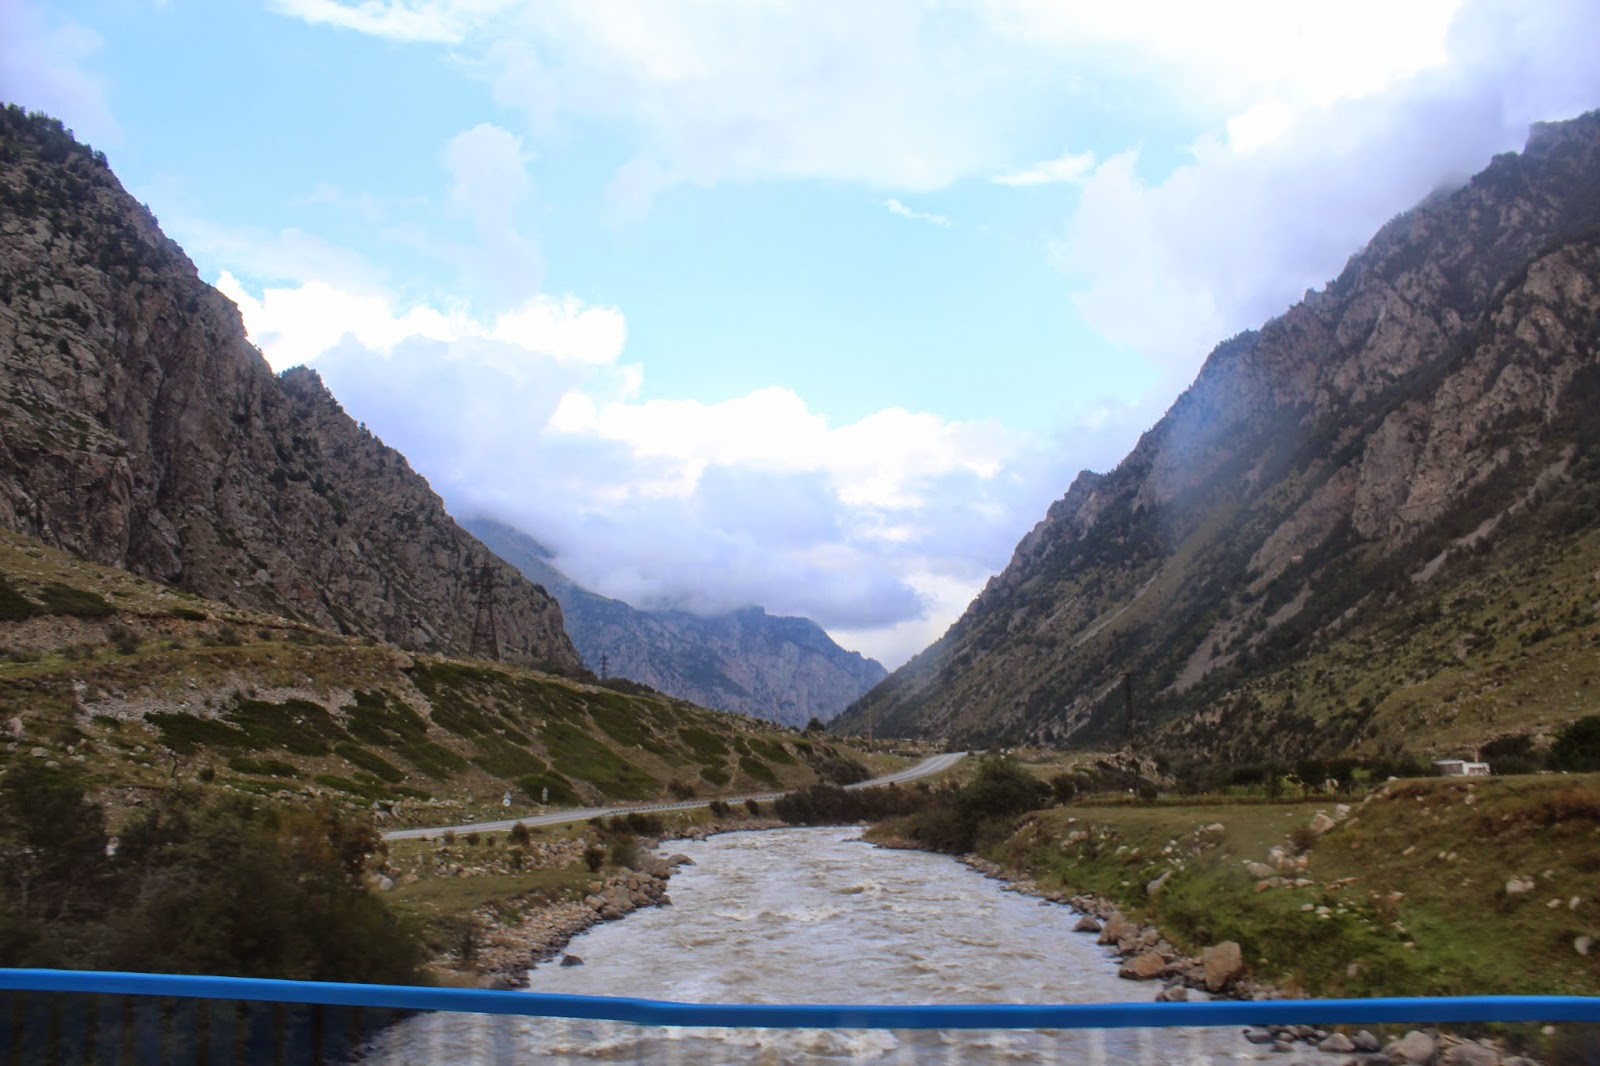 Our view on our drive to the hotel in the Cheget region.